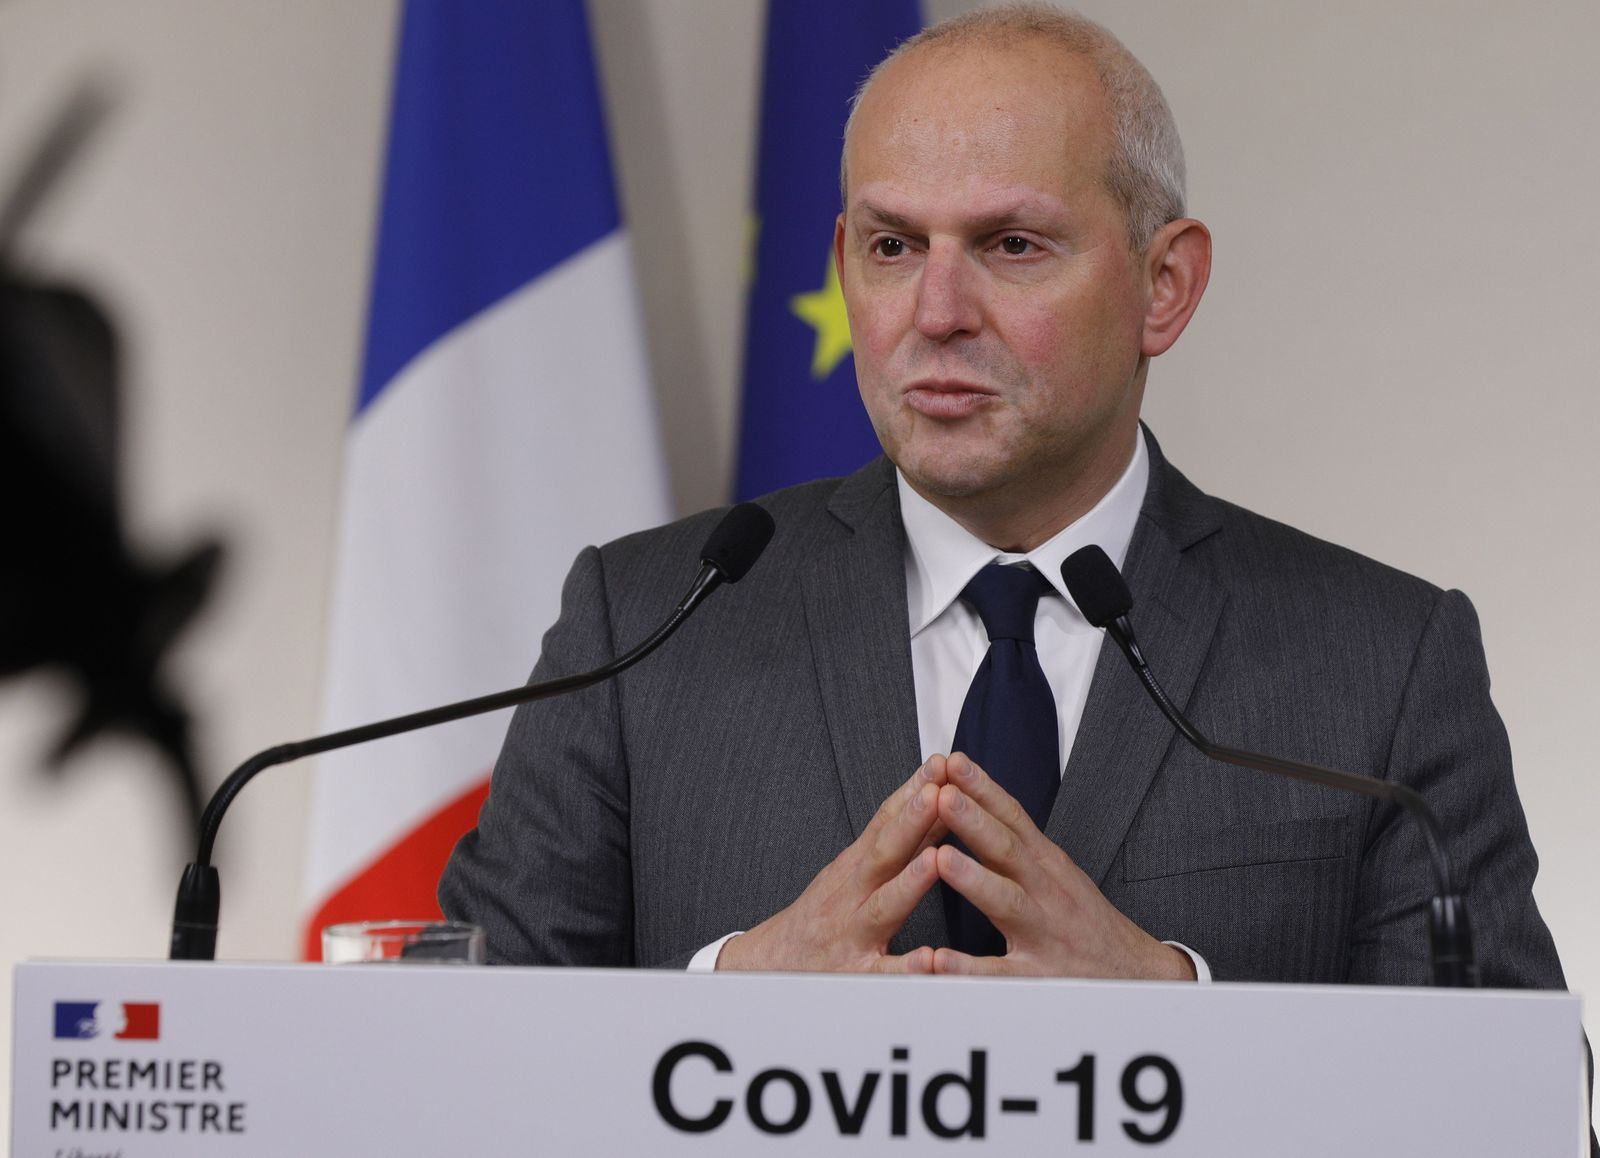 French governbment press conference on Coronavirus Covid-19 crisis, Paris, France - 28 Mar 2020